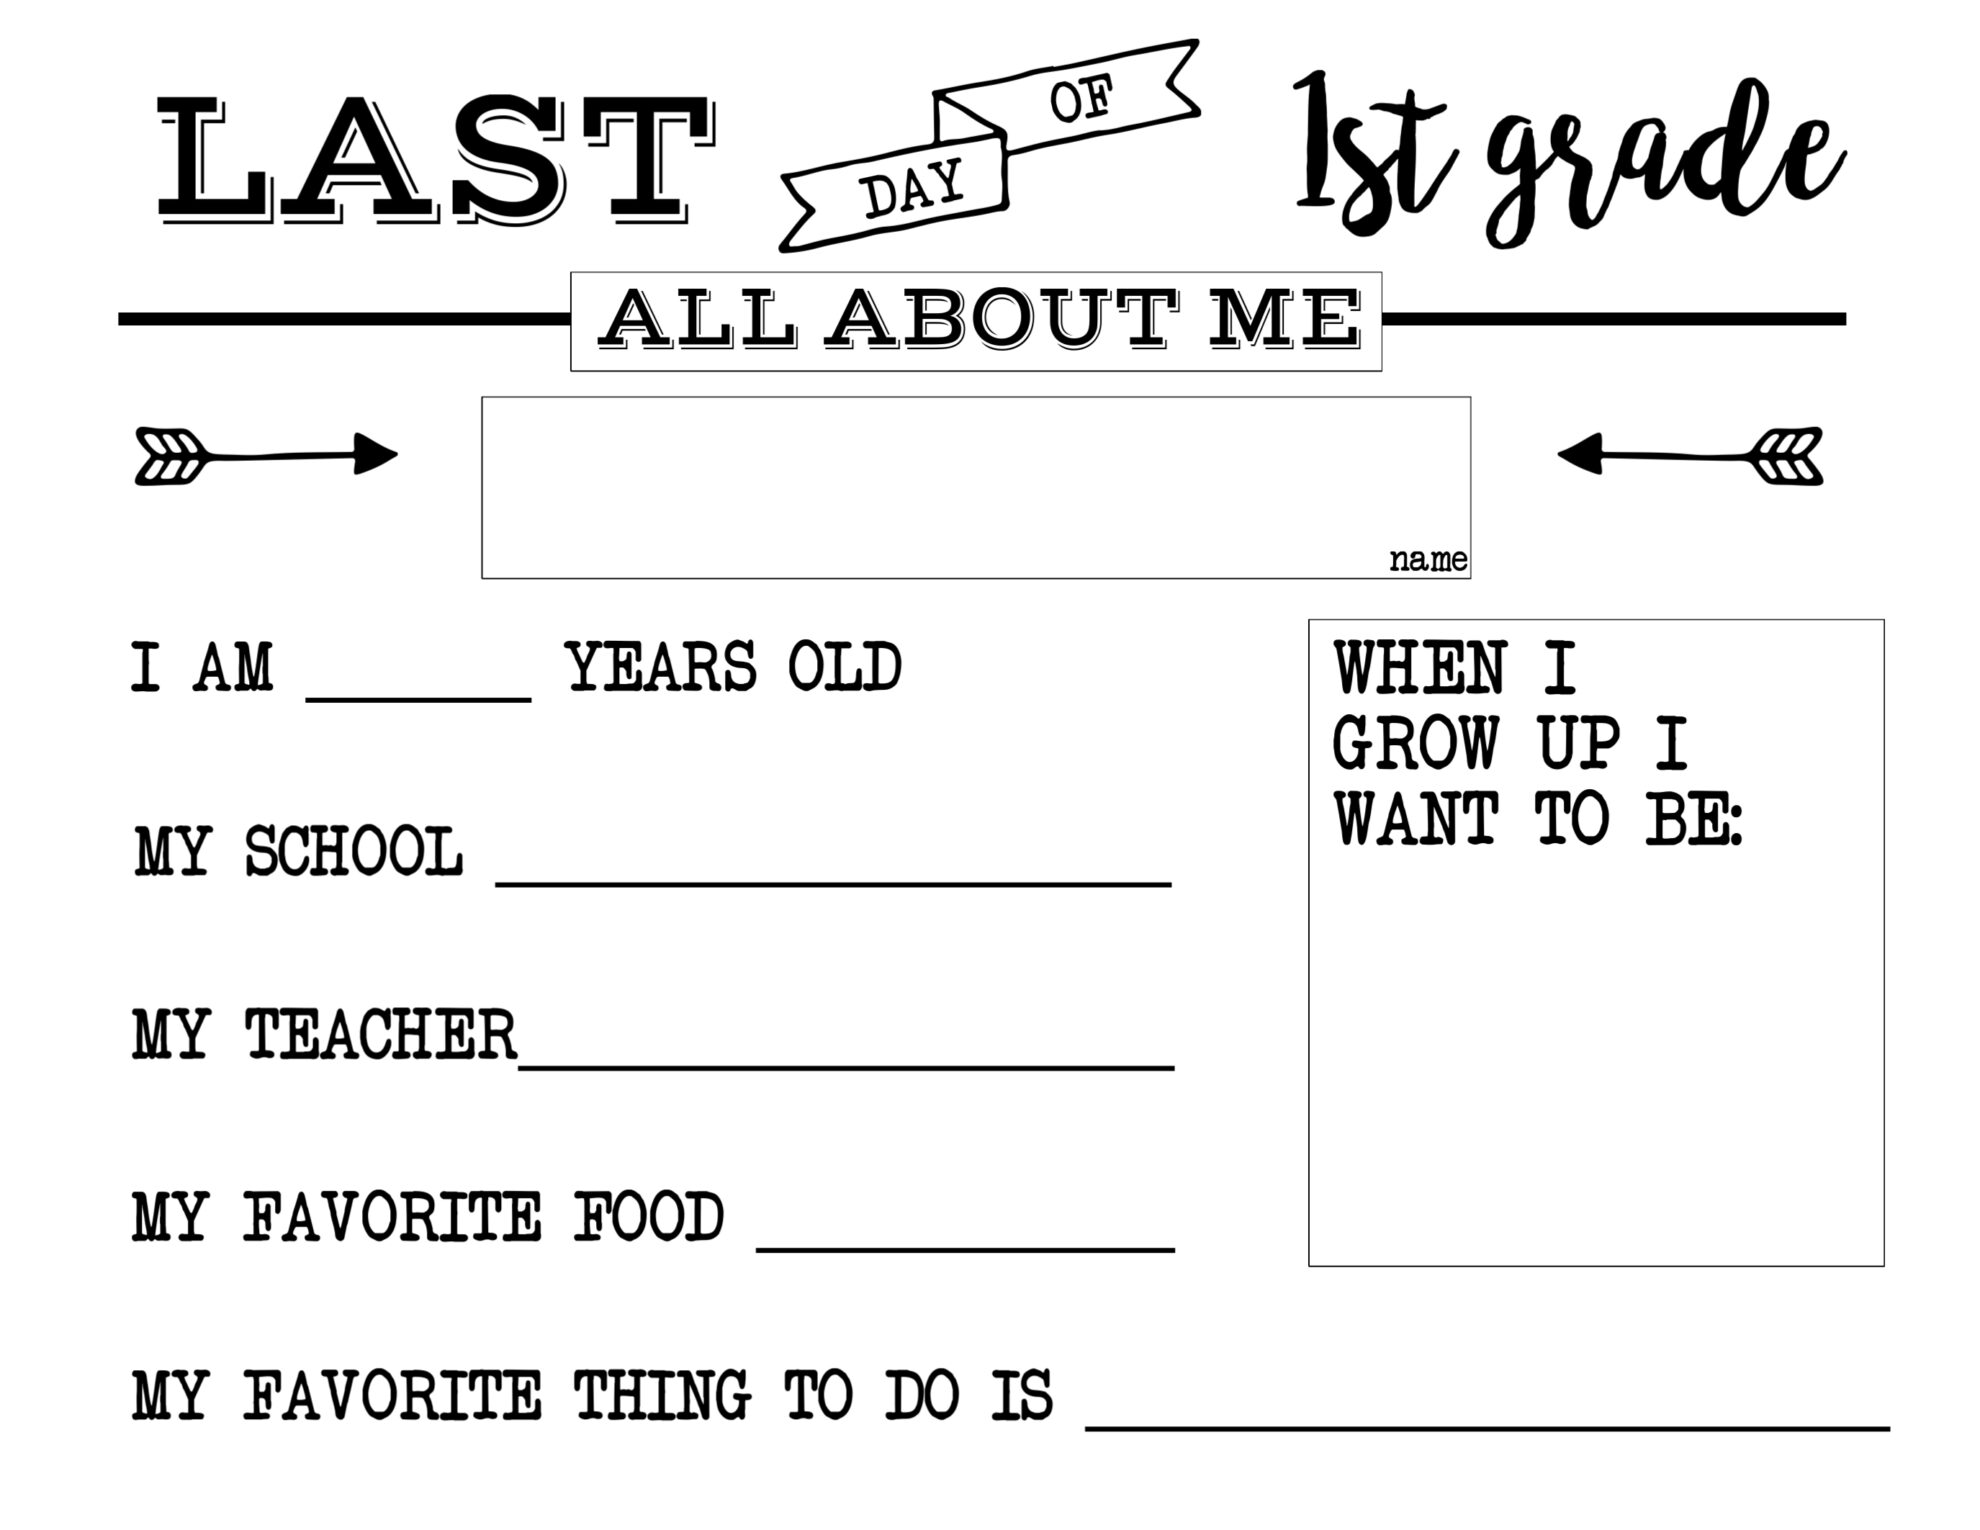 Superb image regarding all about me printable preschool